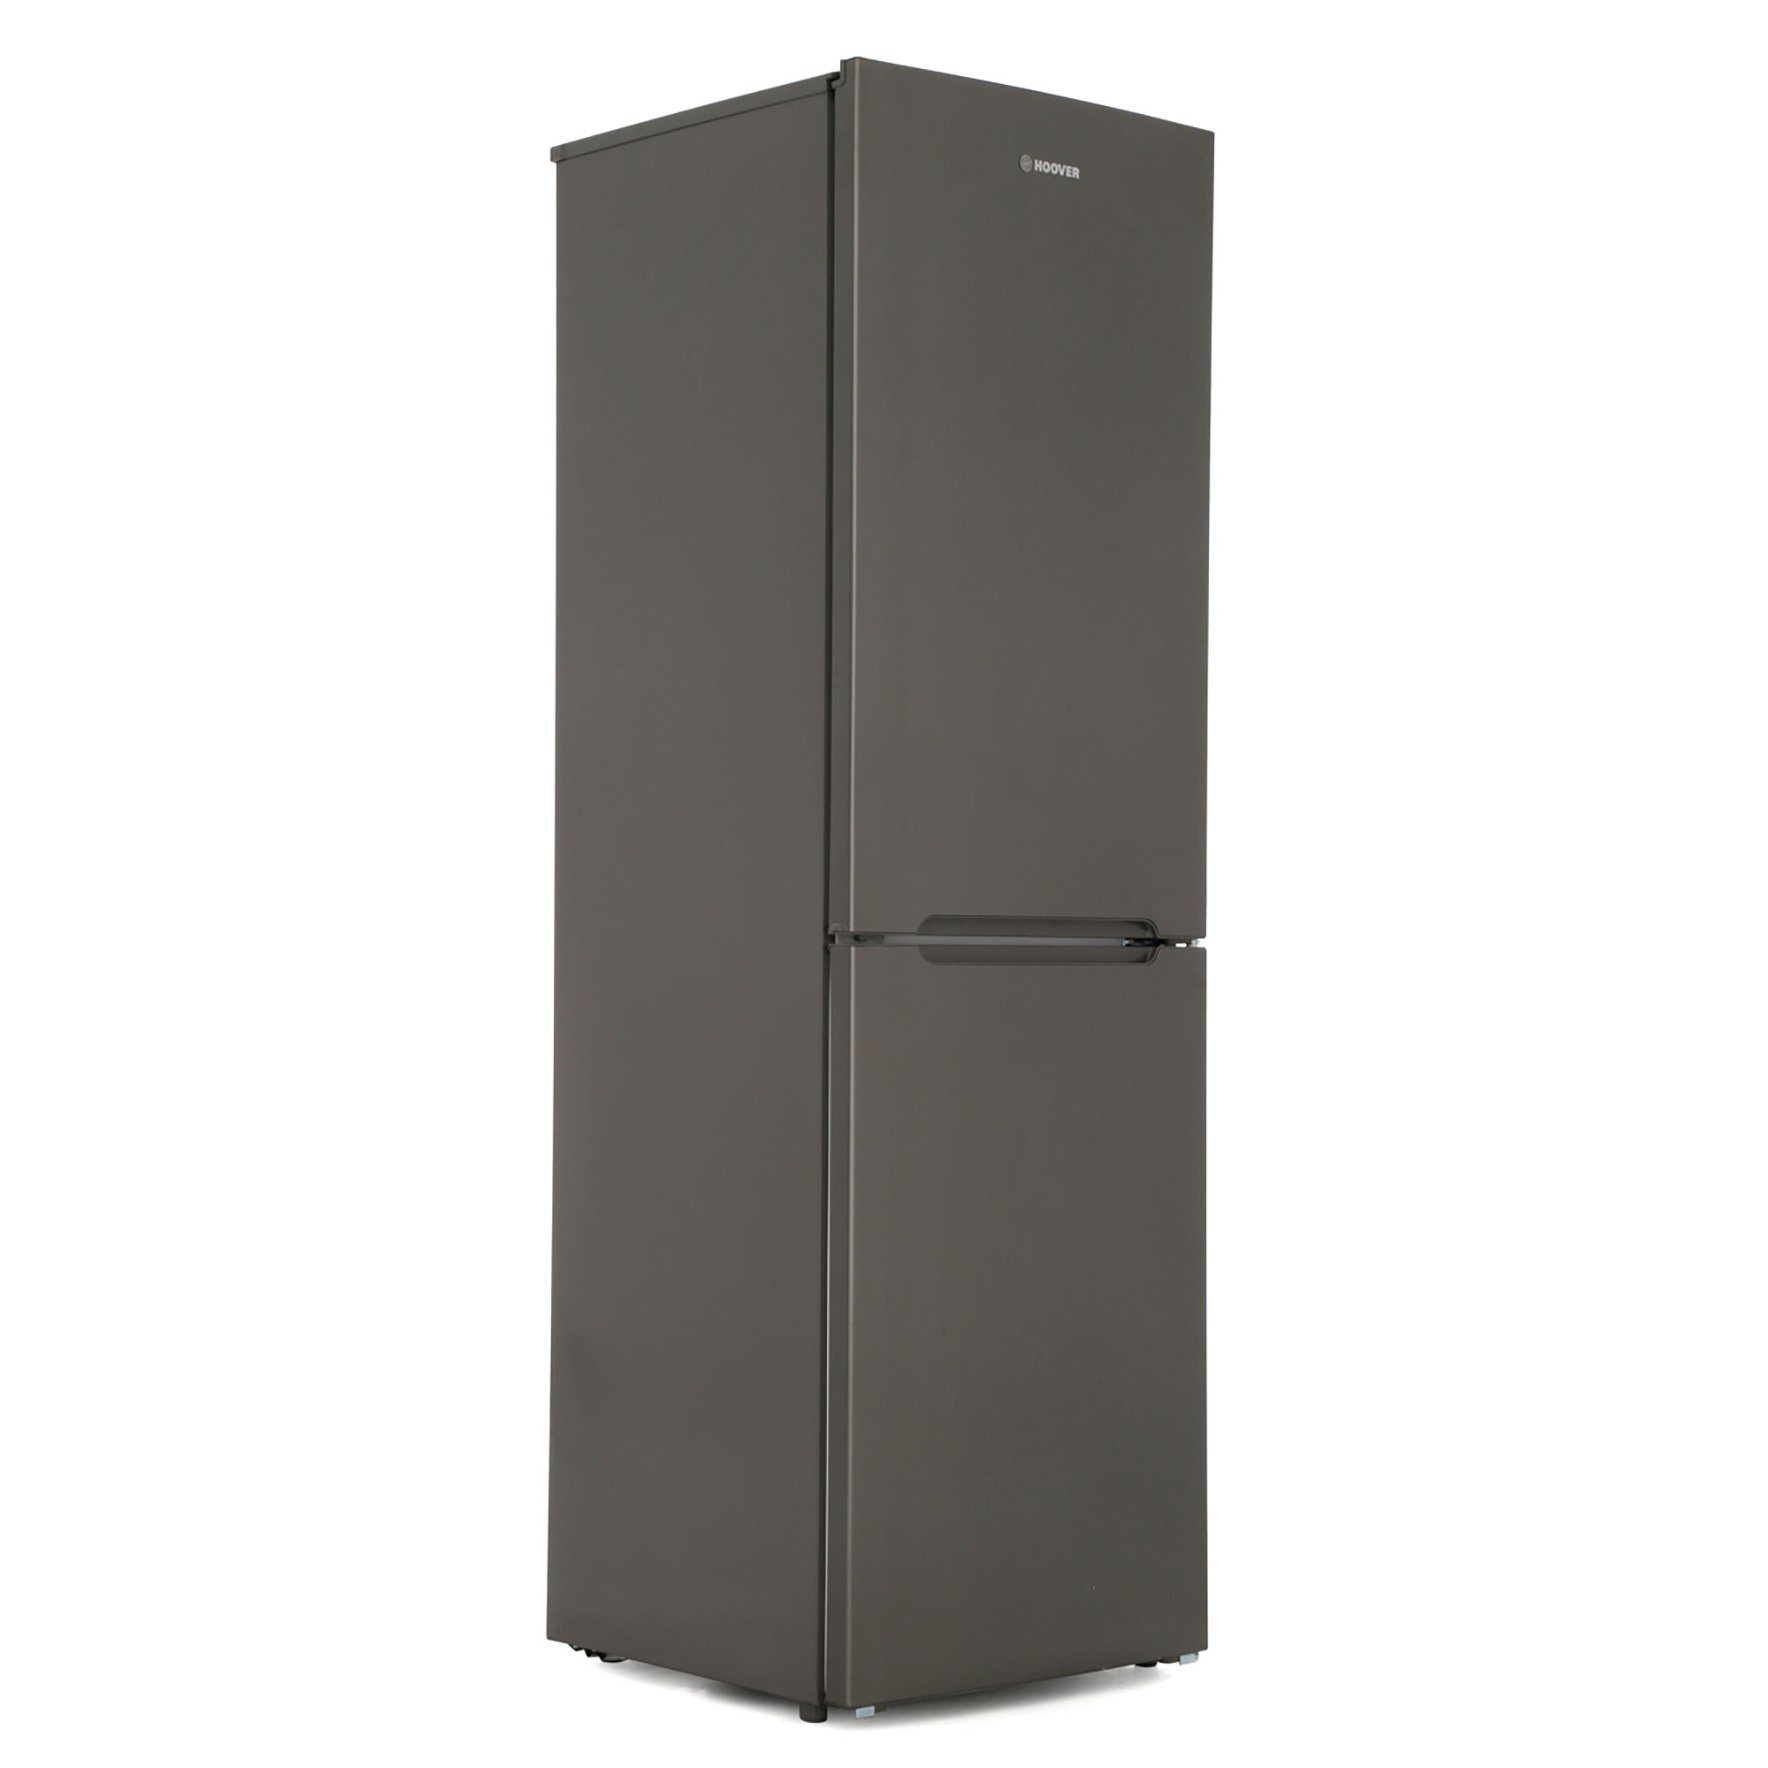 Hoover HCF5172XK Frost Free Fridge Freezer